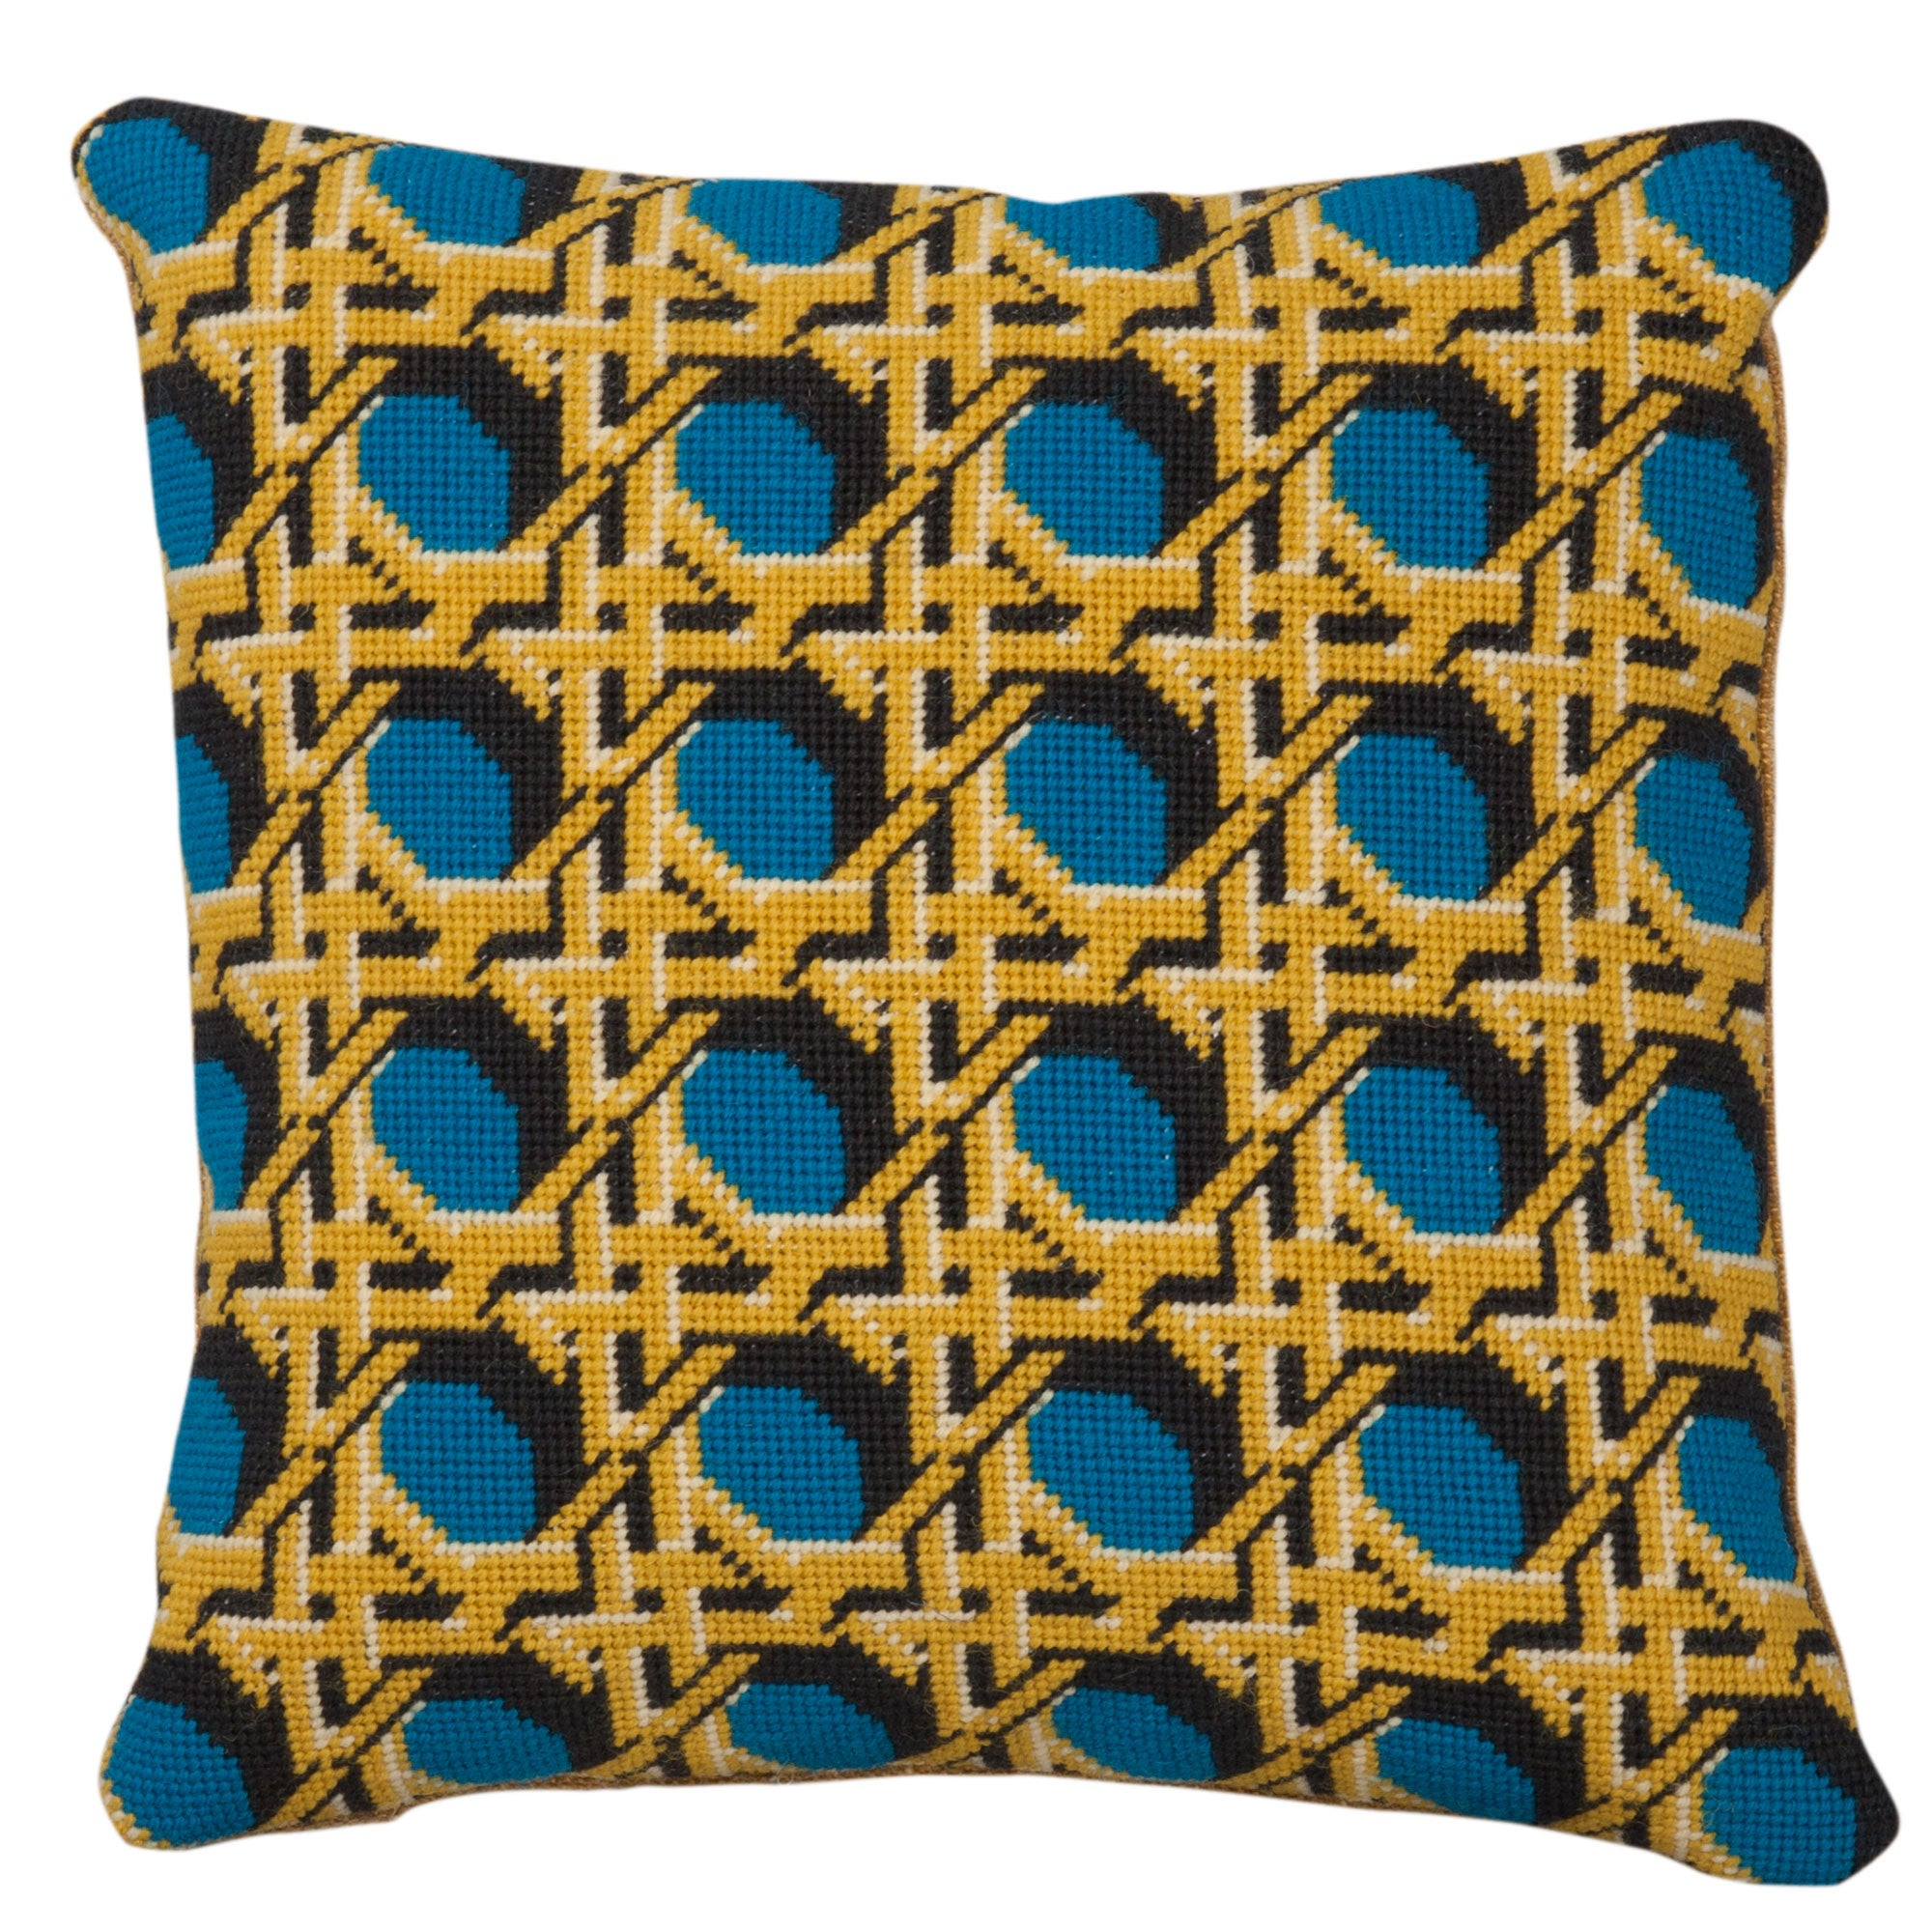 Pentreath & Hall Regency Caning Square Needlepoint Cushion Teal Fine Cell Work